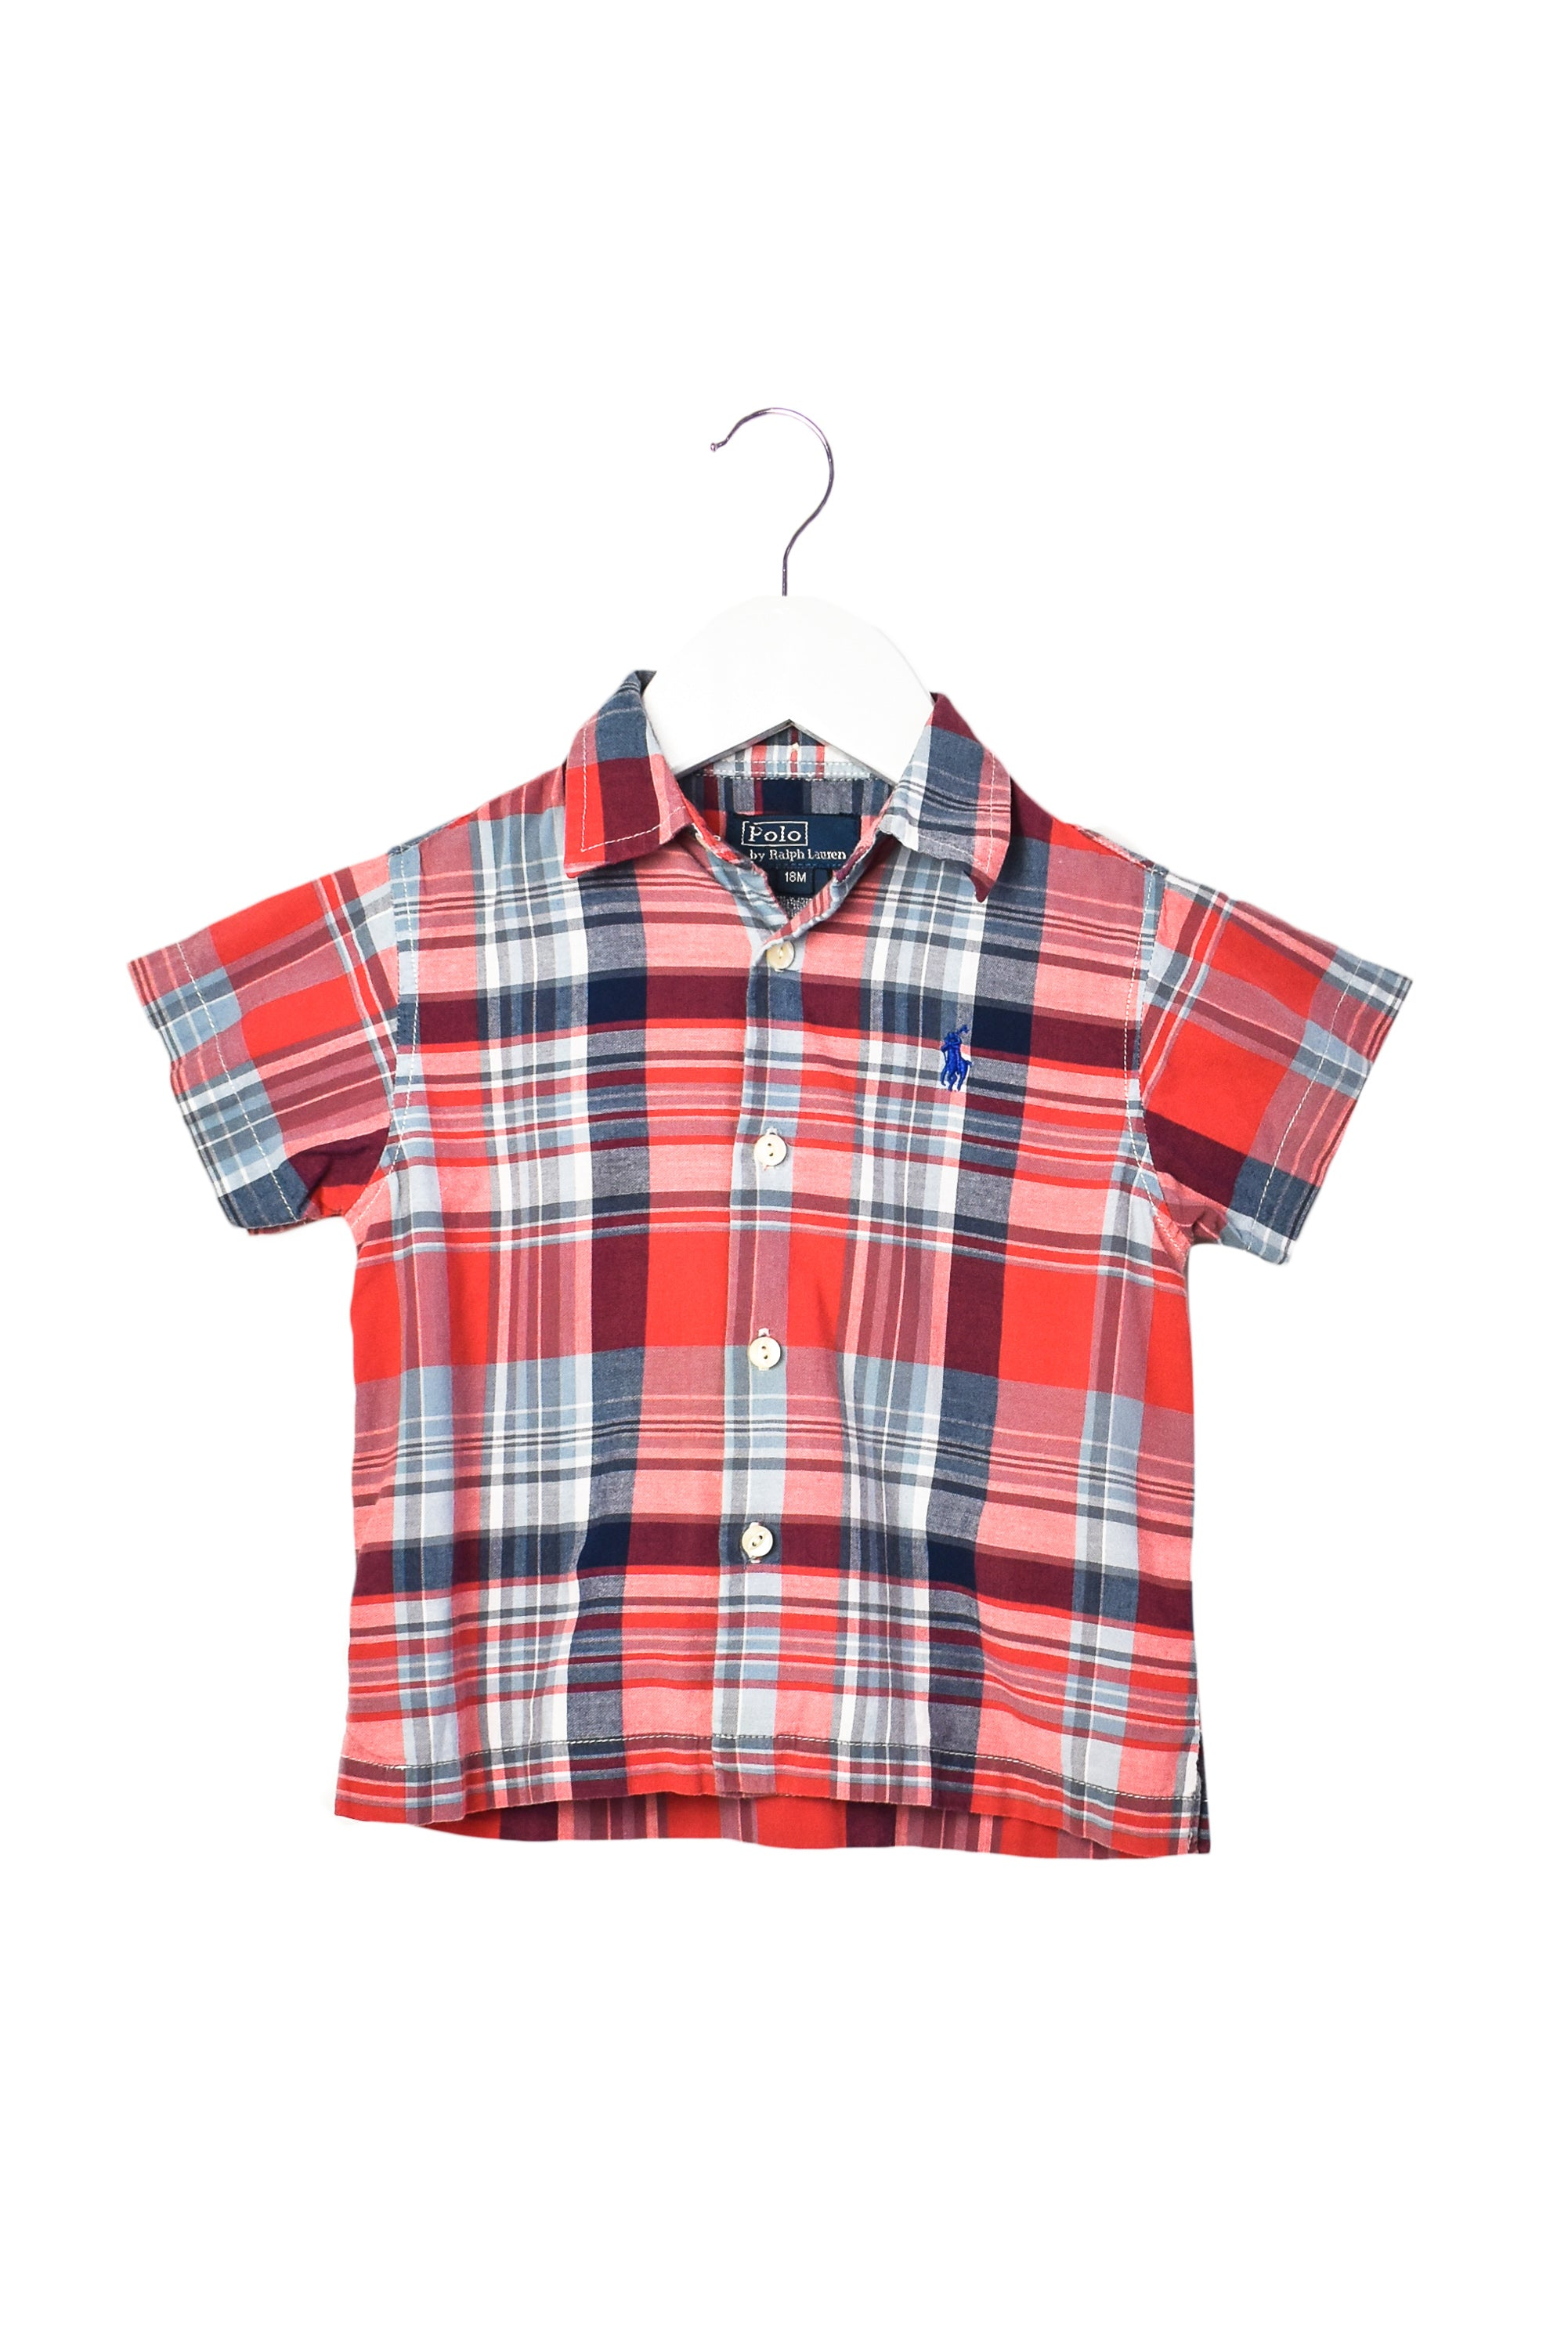 10006296 Polo Ralph Lauren Baby~Shirt 12-18M at Retykle